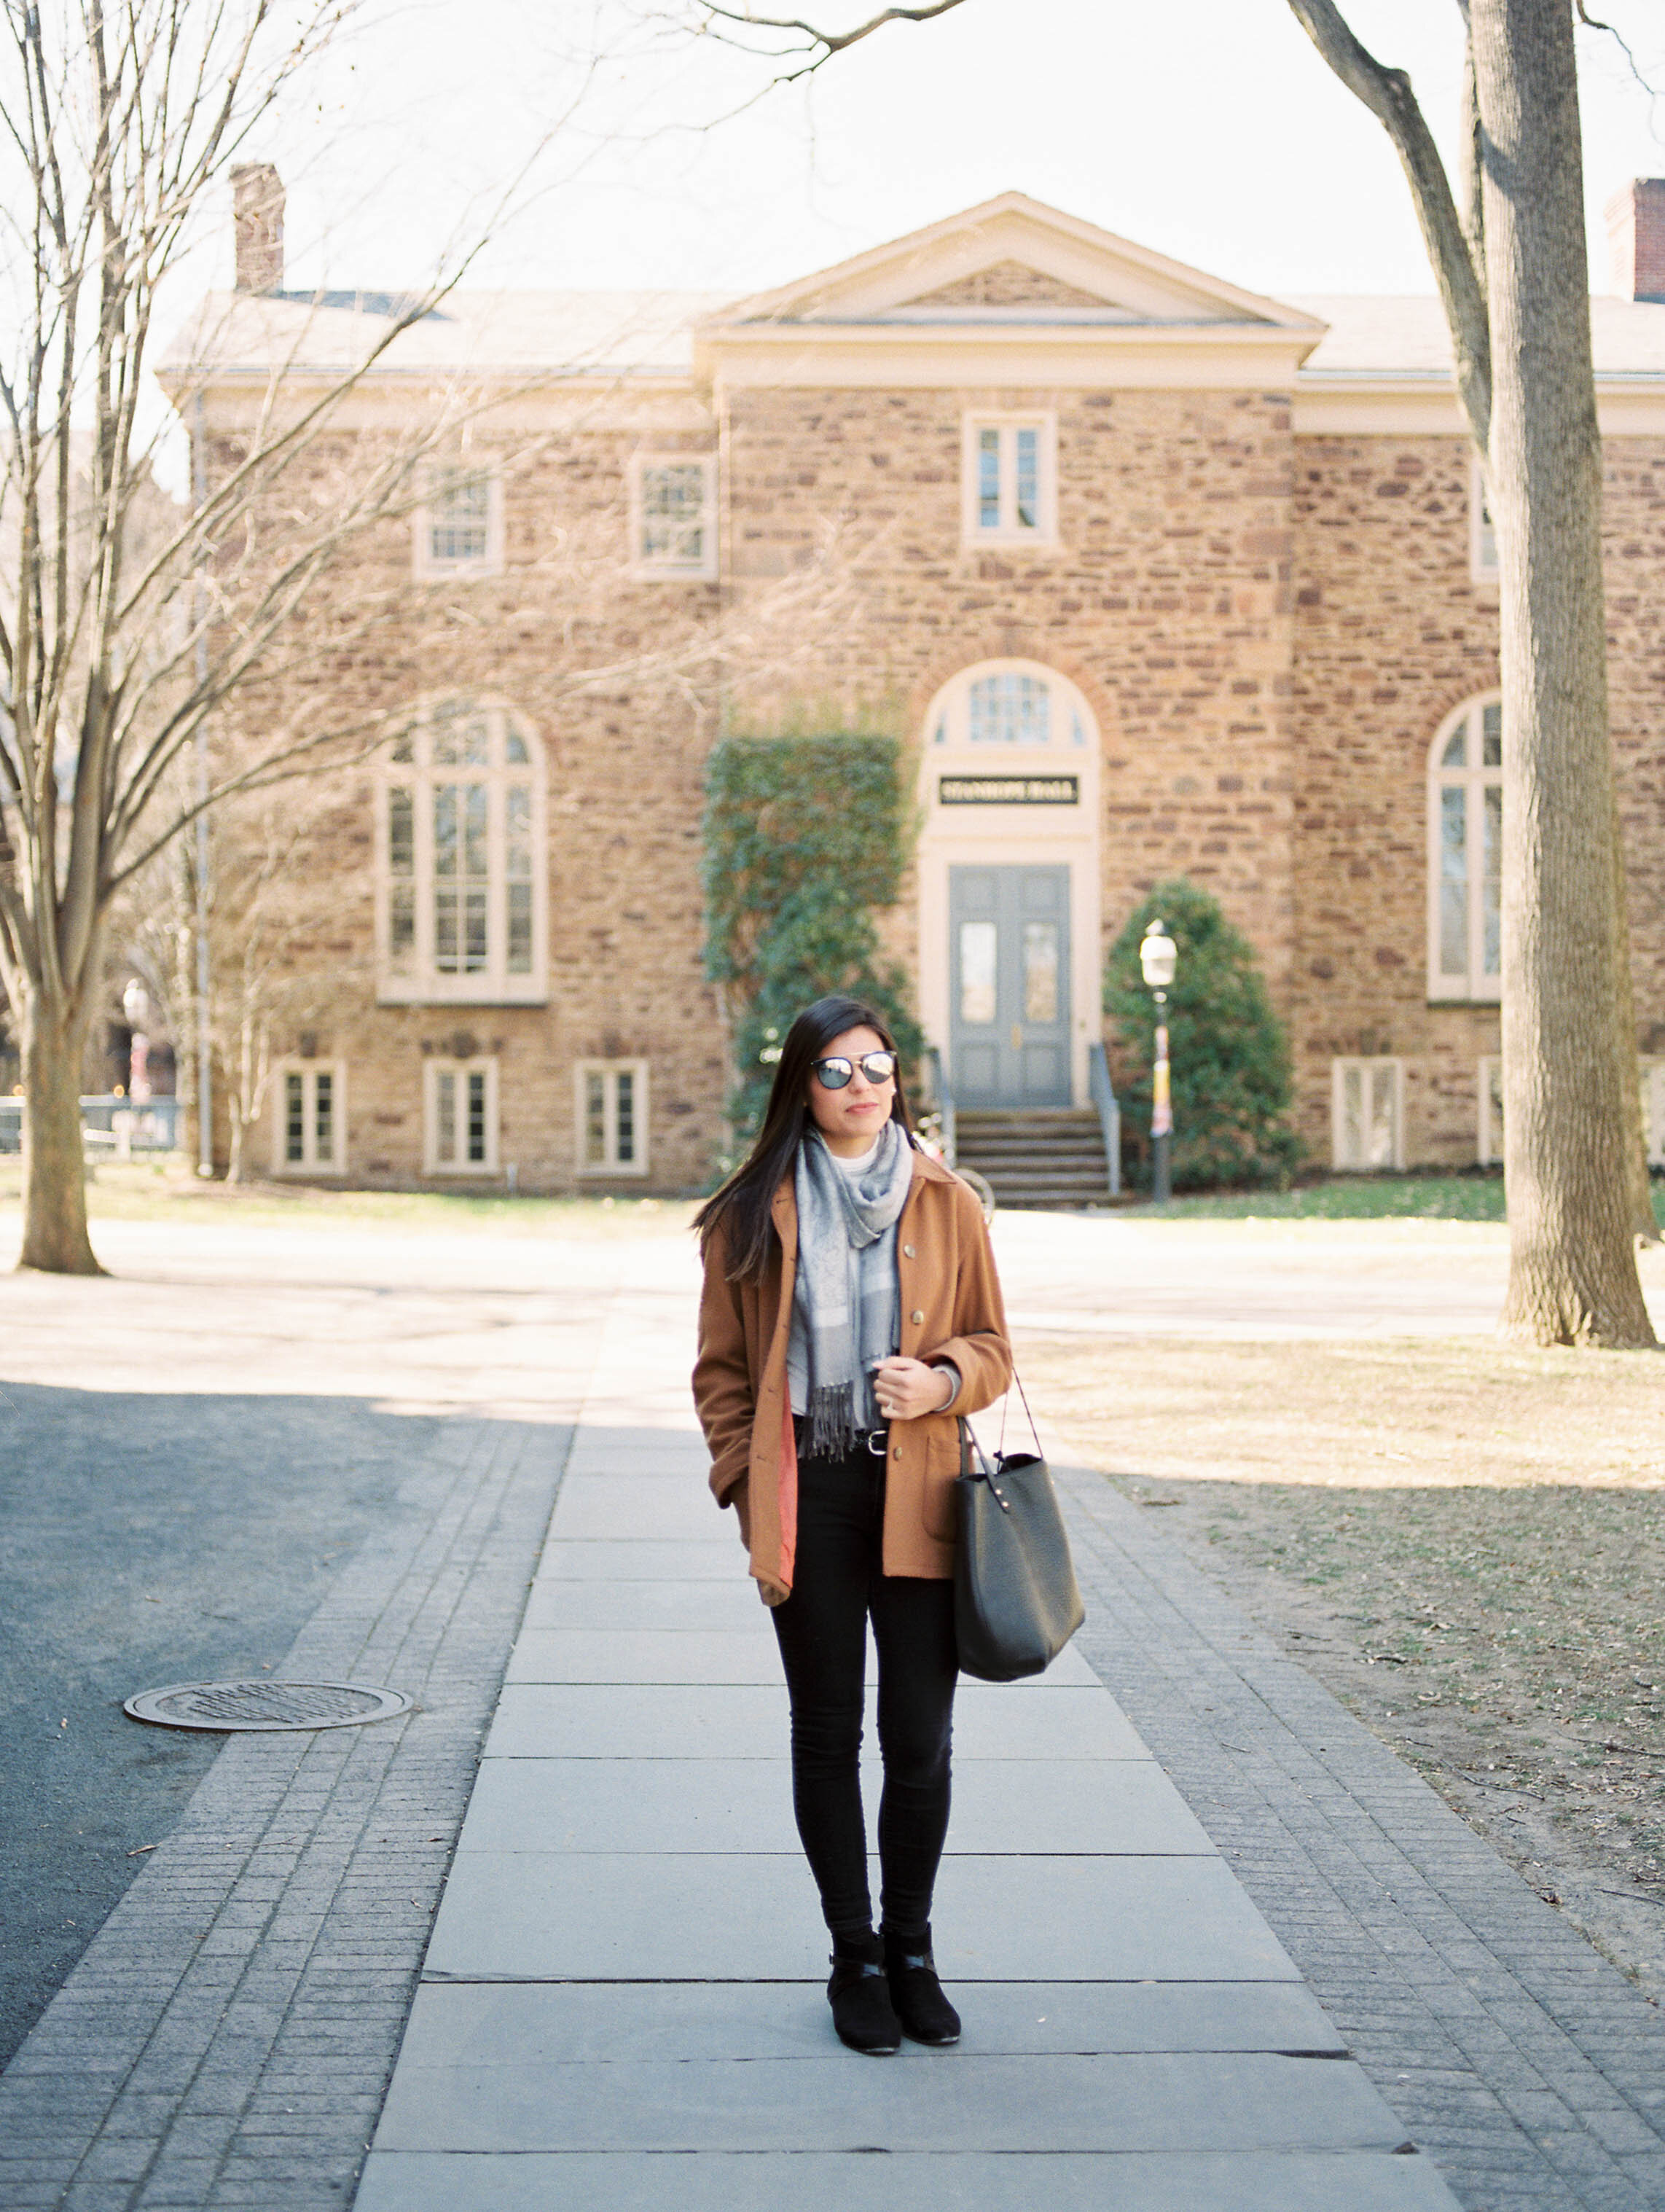 Outdoor lifestyle couples session with beige coat, coffee, shopping in Princeton New Jersey on Princeton University Campus by Liz Andolina Photography